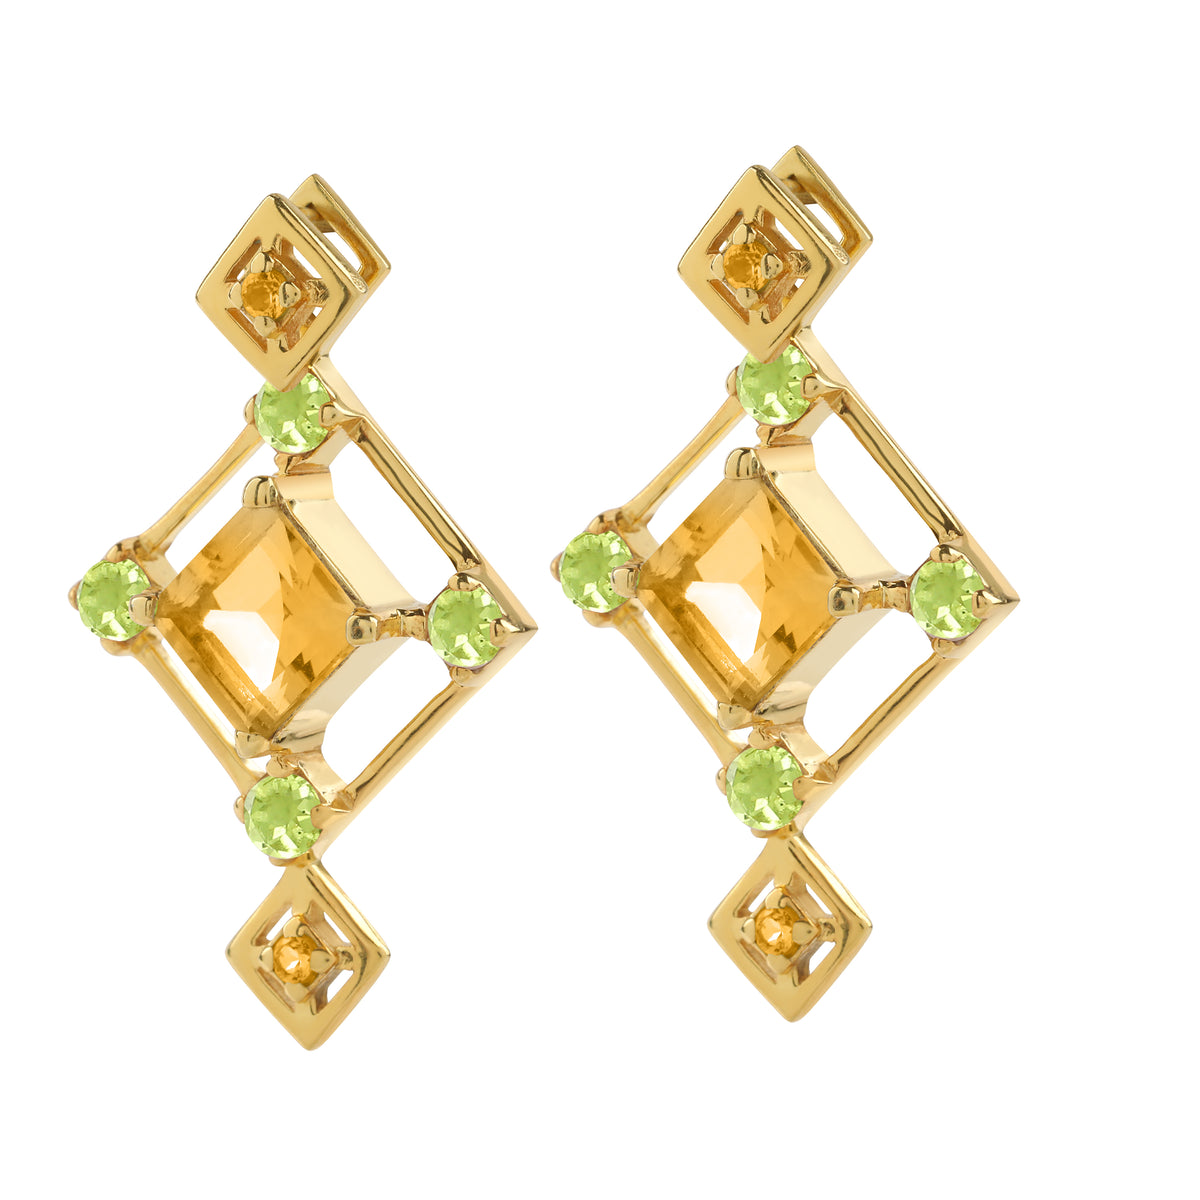 Reconceptions Two-Way Studs - Gold - Yellow